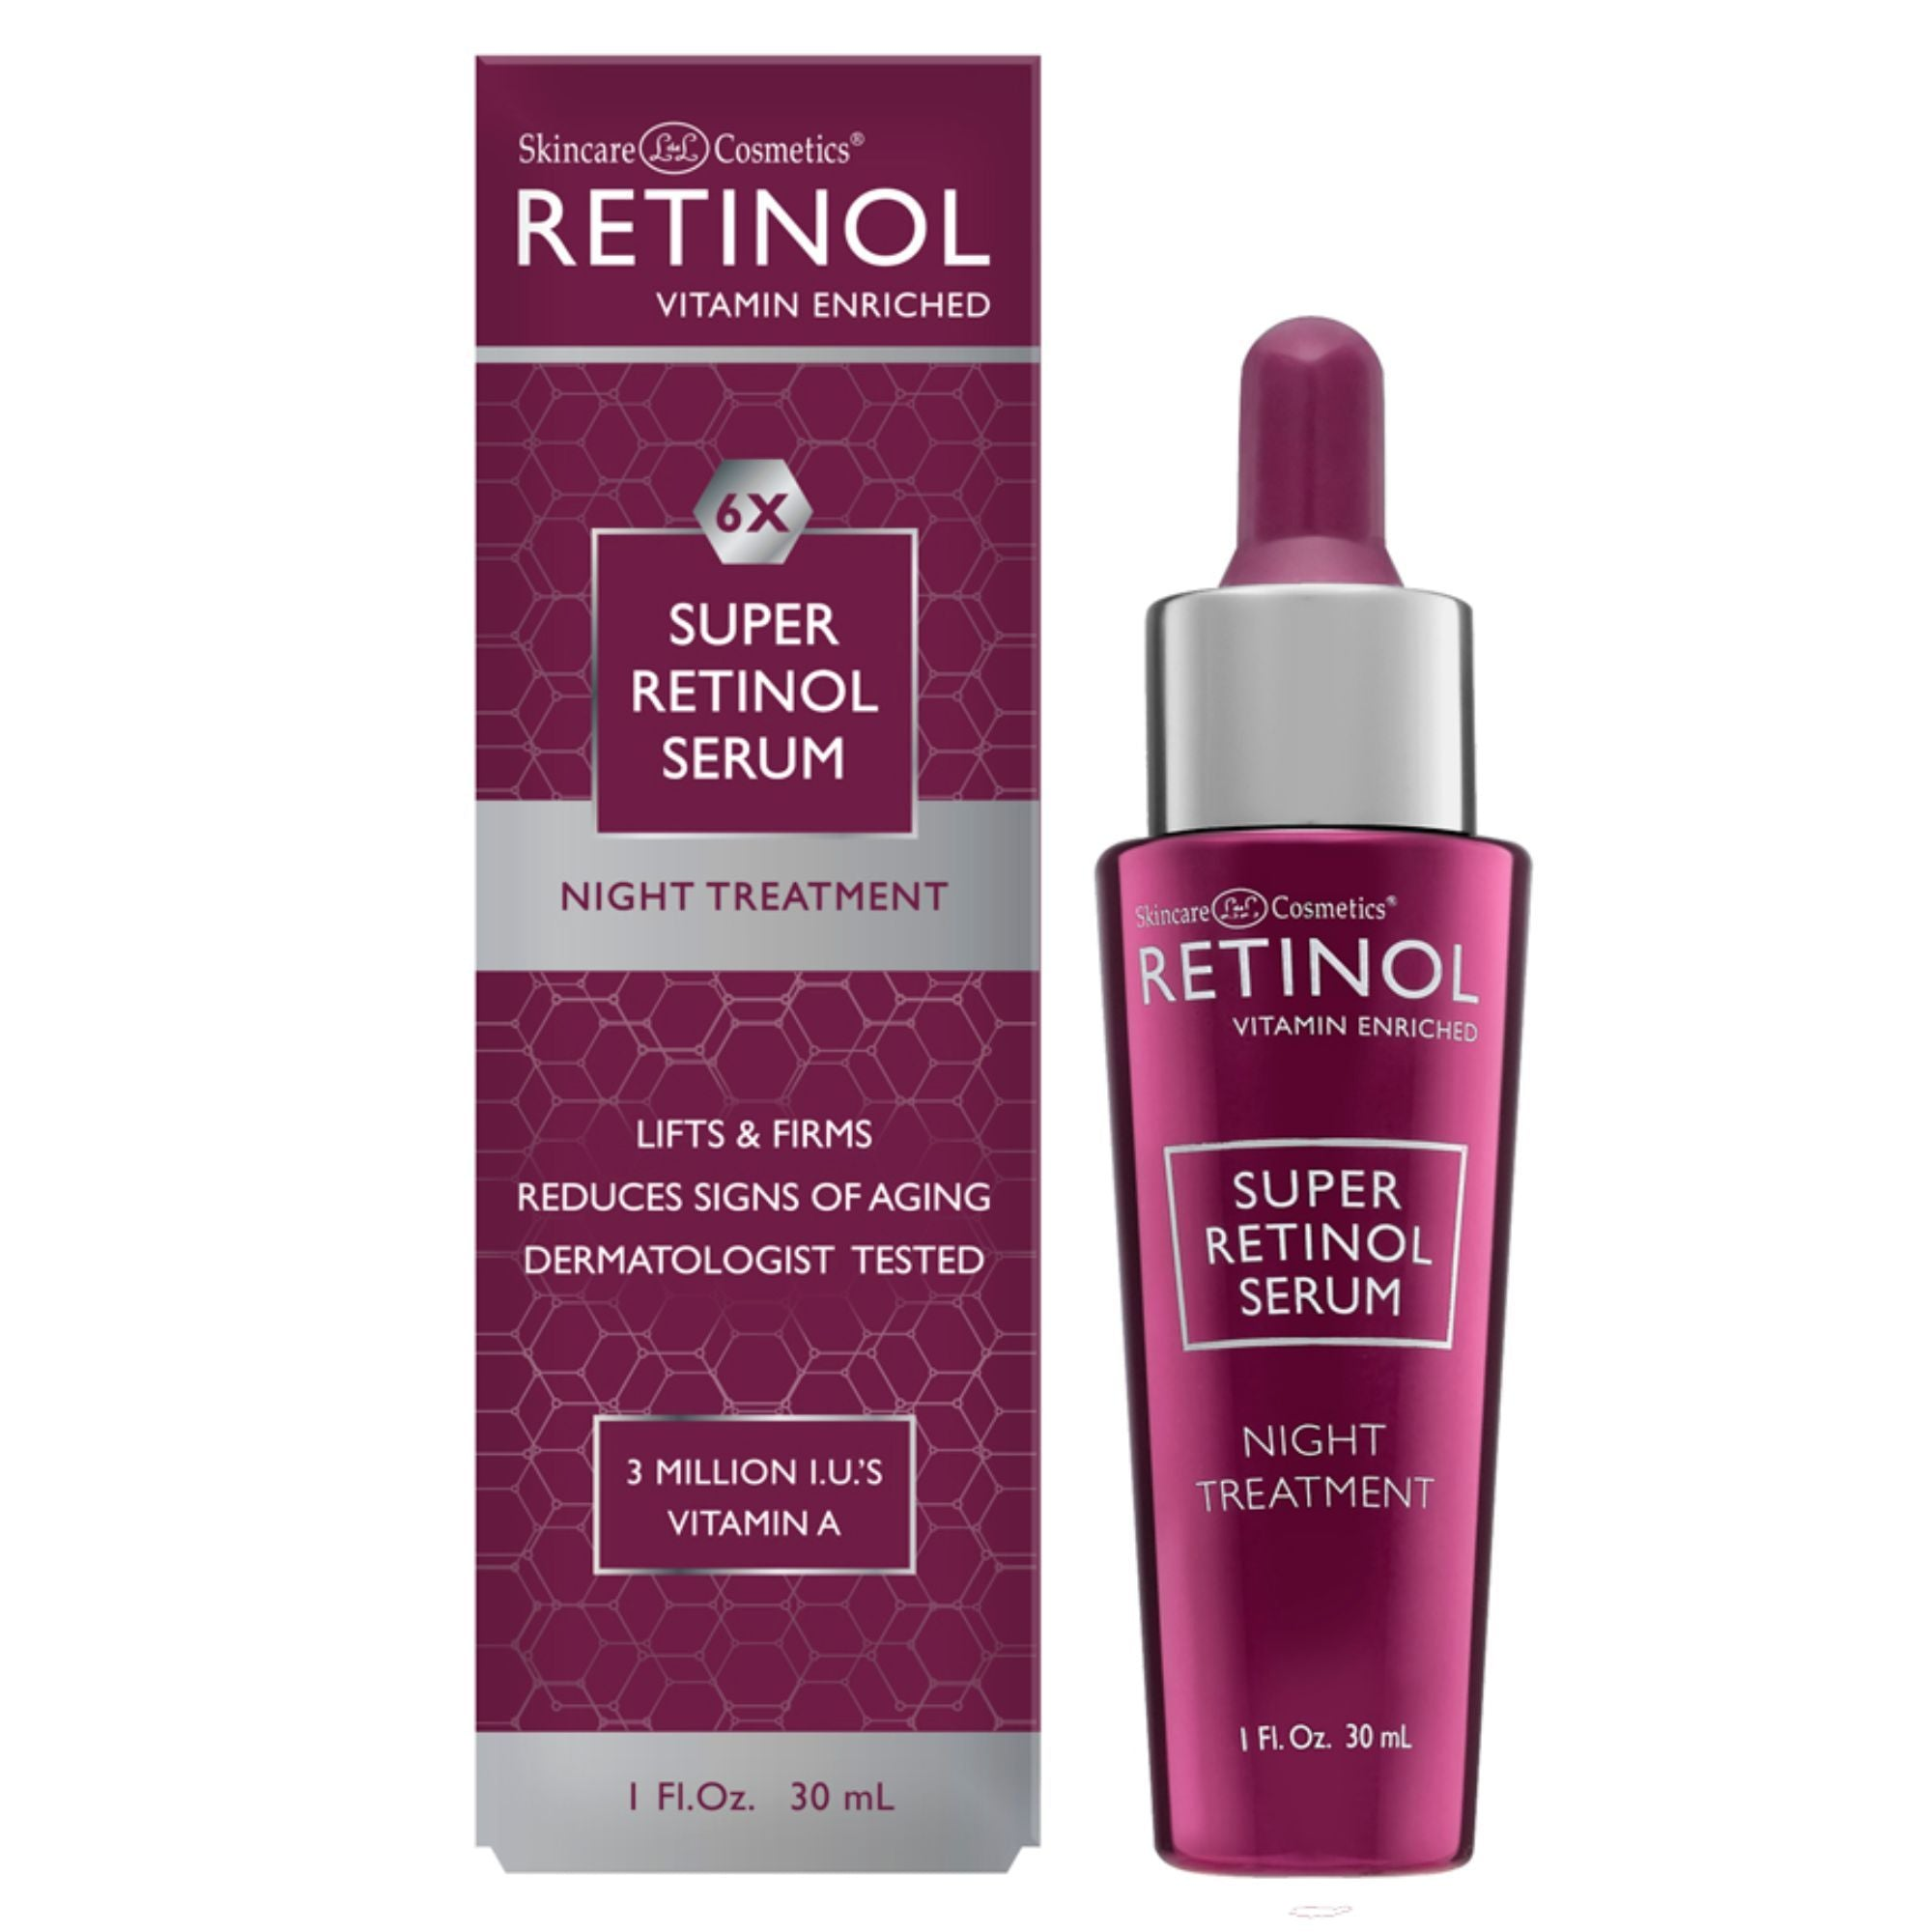 6X Super Retinol Serum